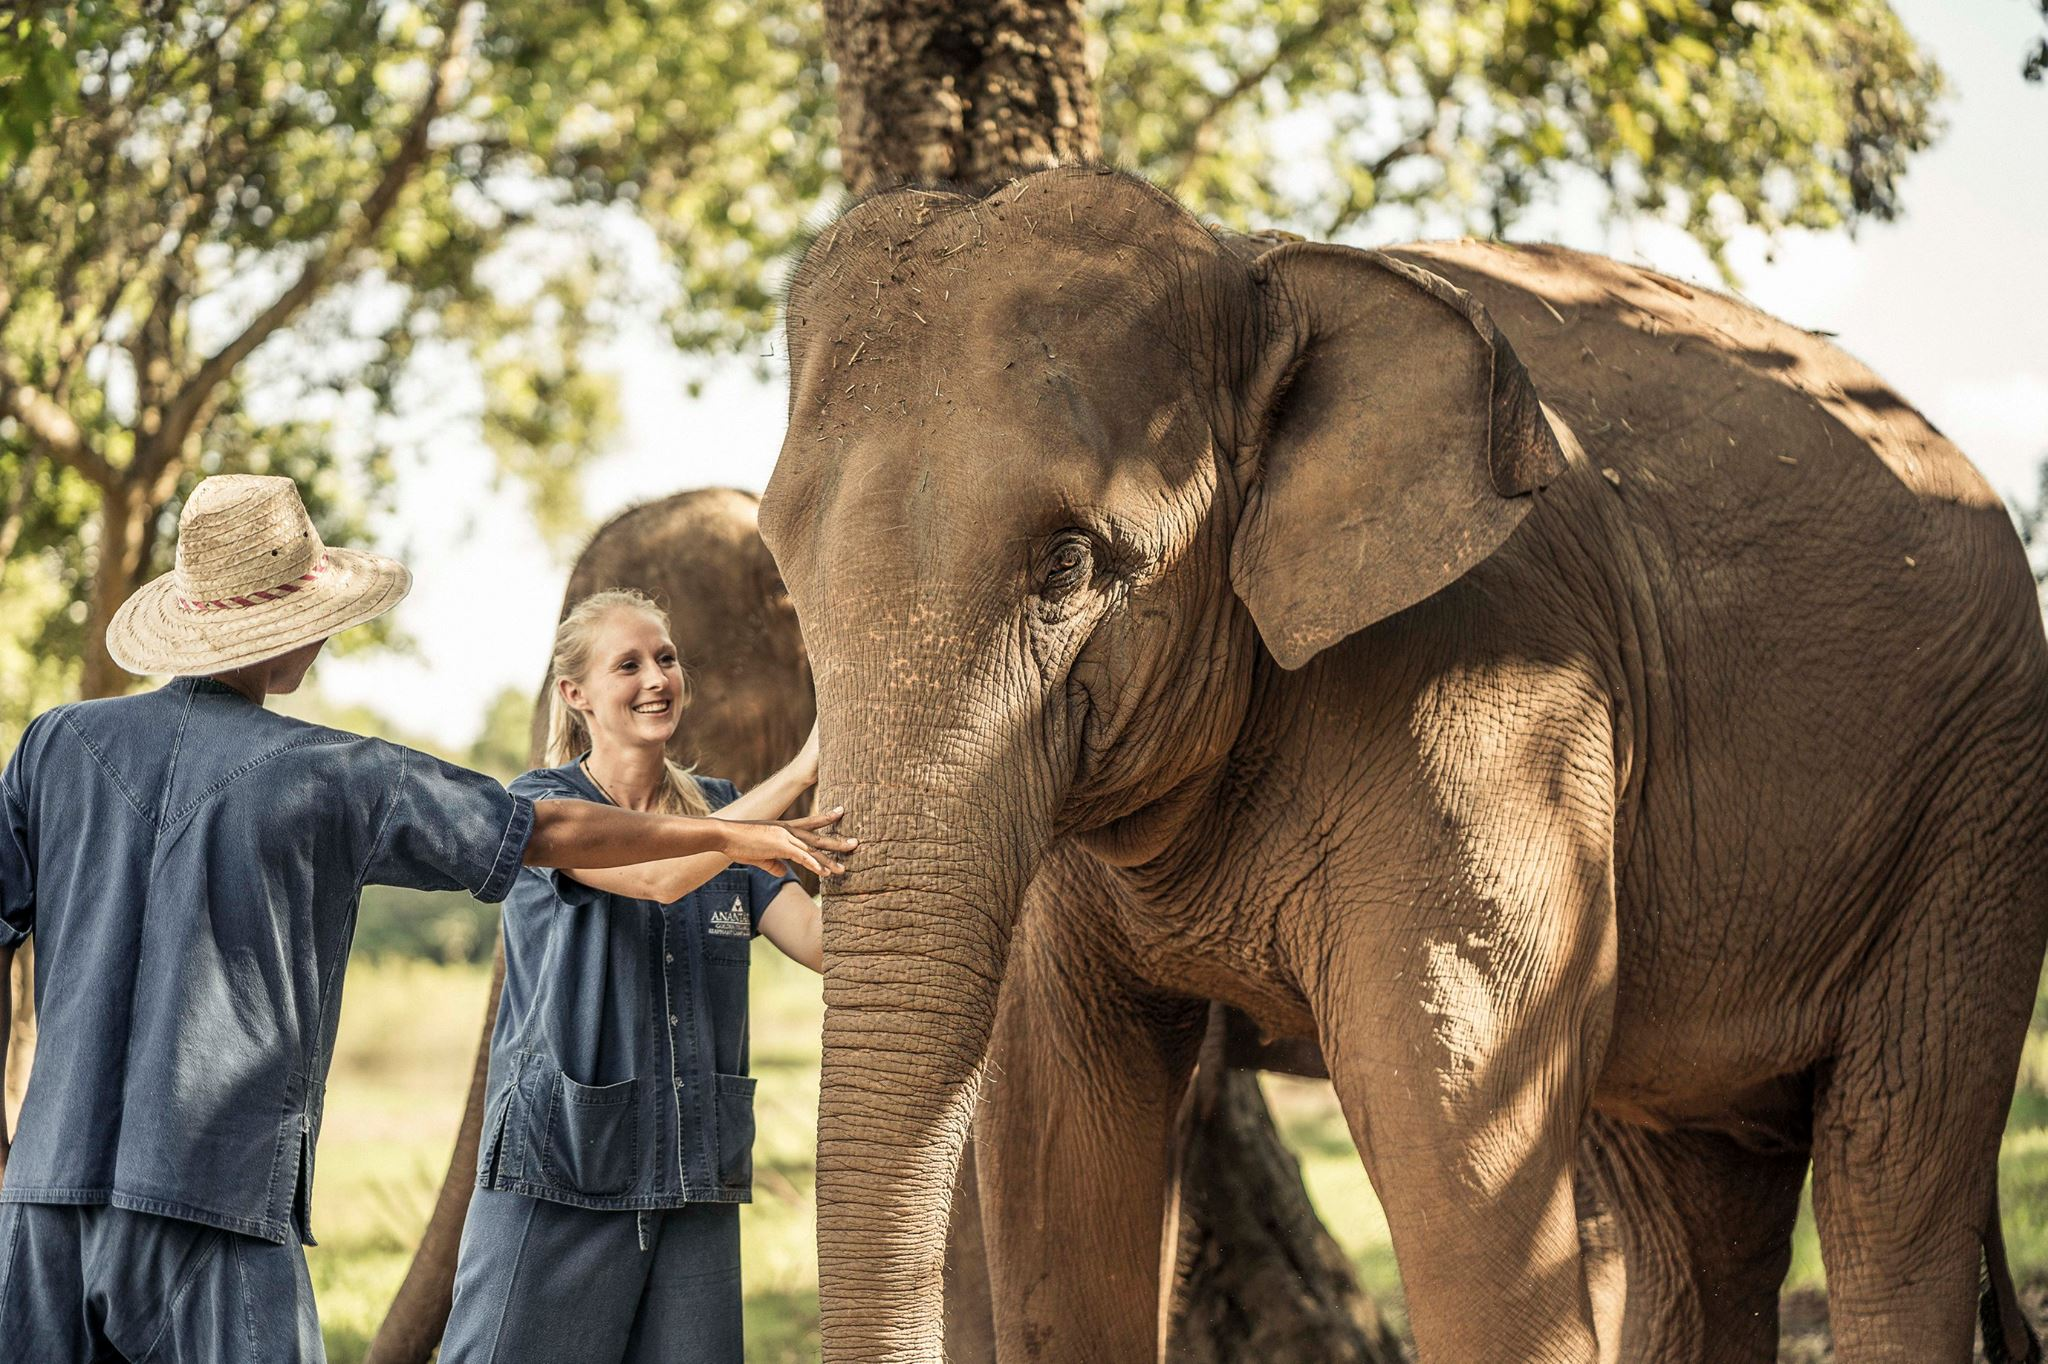 An elephant experience at the Anantara Golden Triangle Elephant Camp & Resort. Photo: Anantara